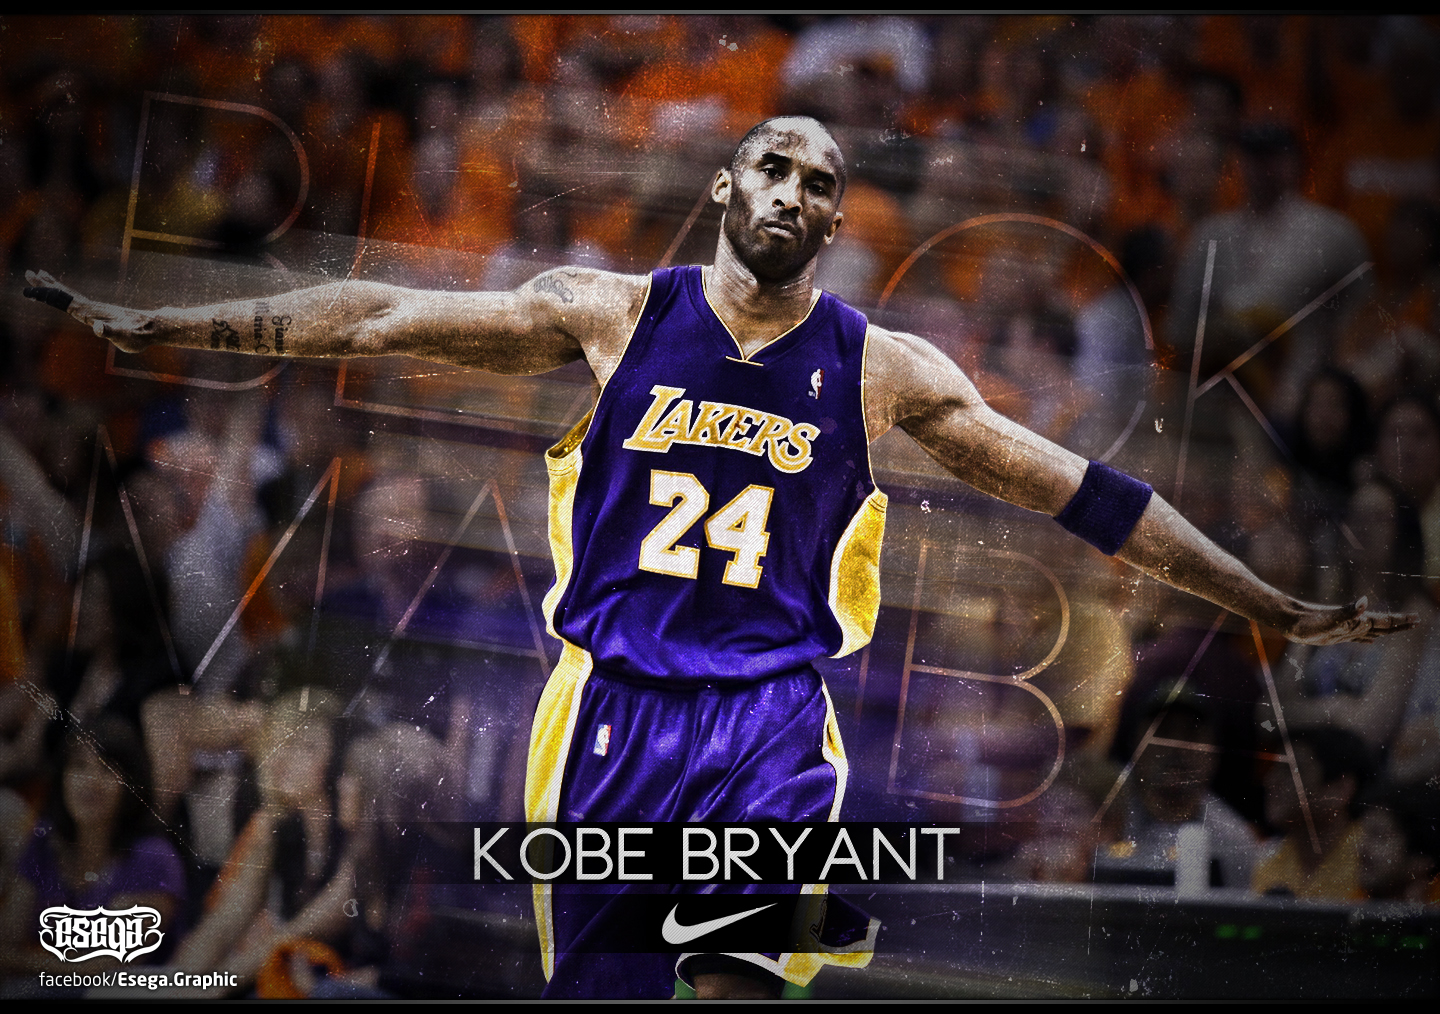 Free Download Kobe Bryant Wallpaper 2 Hd Wallpaper Basketball